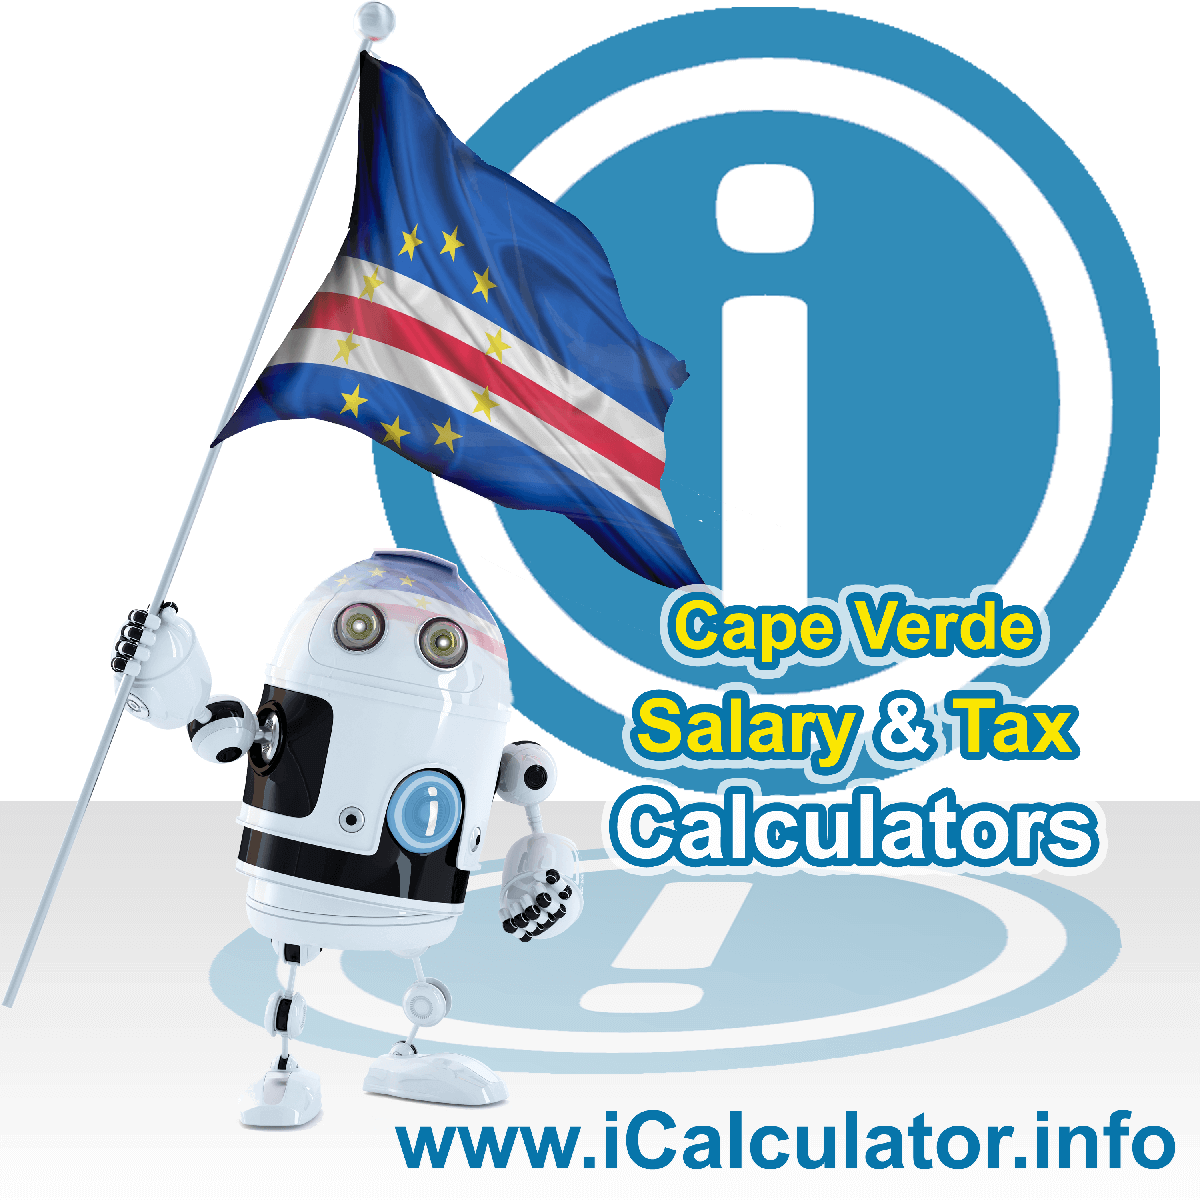 Cape Verde Salary Calculator. This image shows the Cape Verdeese flag and information relating to the tax formula for the Cape Verde Tax Calculator